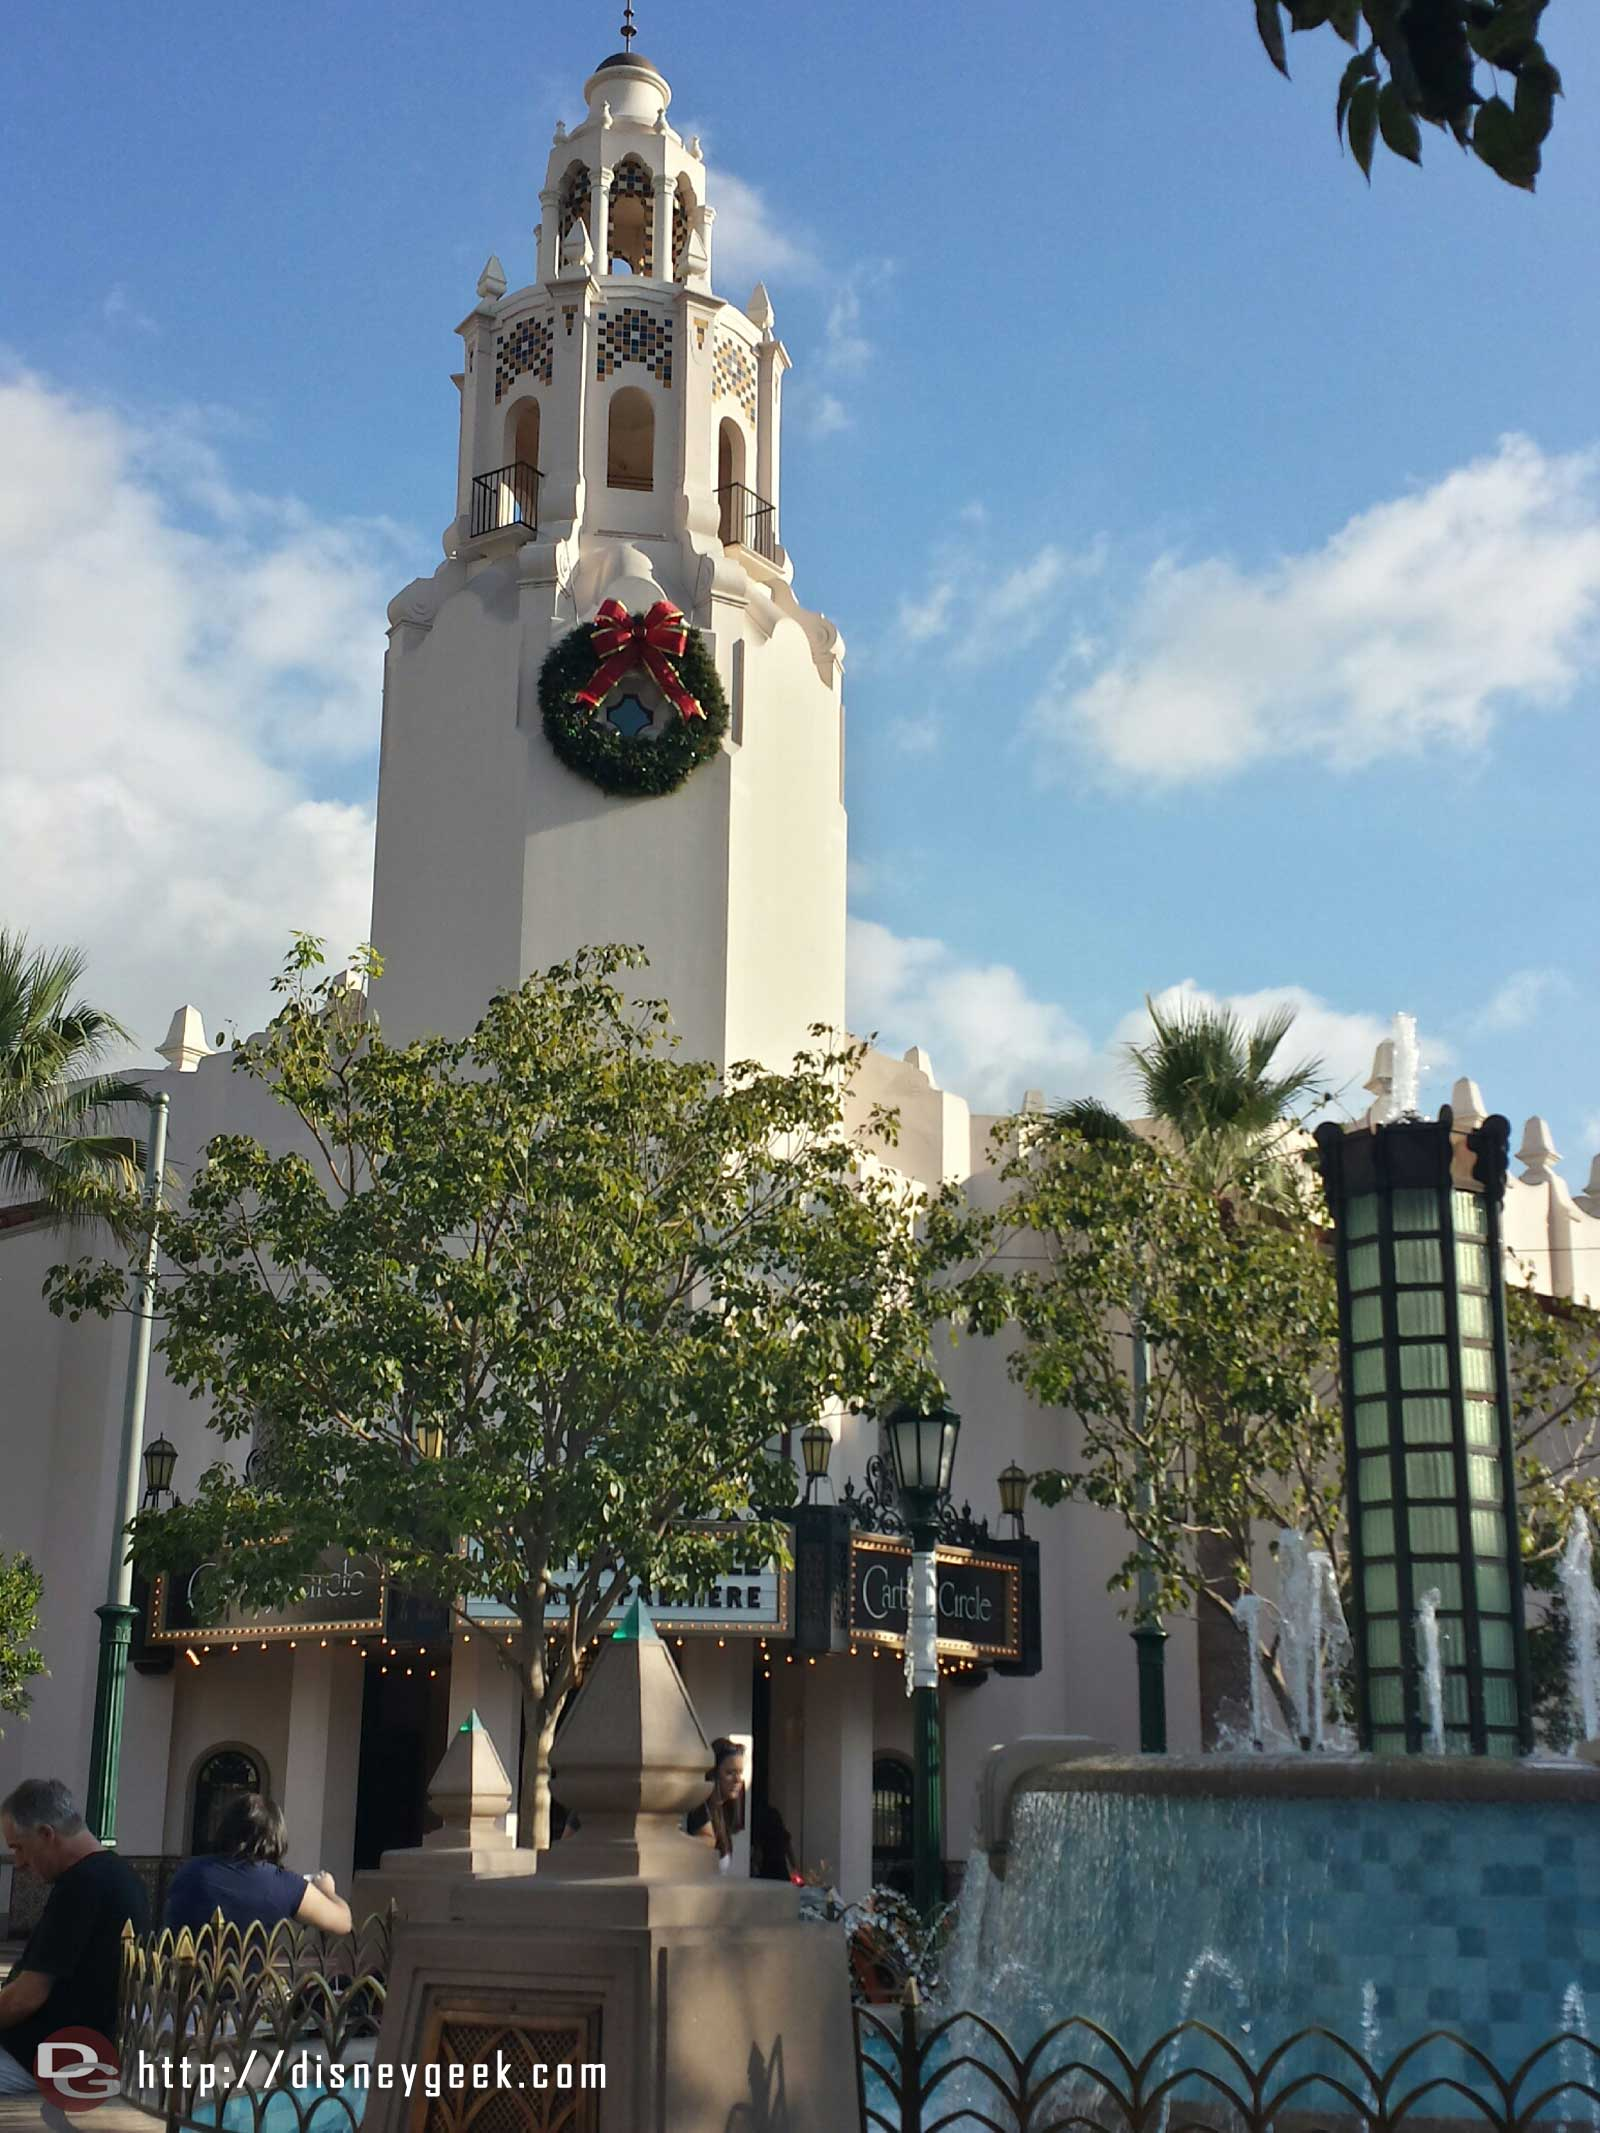 The Carthay Circle Restaurant with a Christmas wreath #BuenaVistaStreet